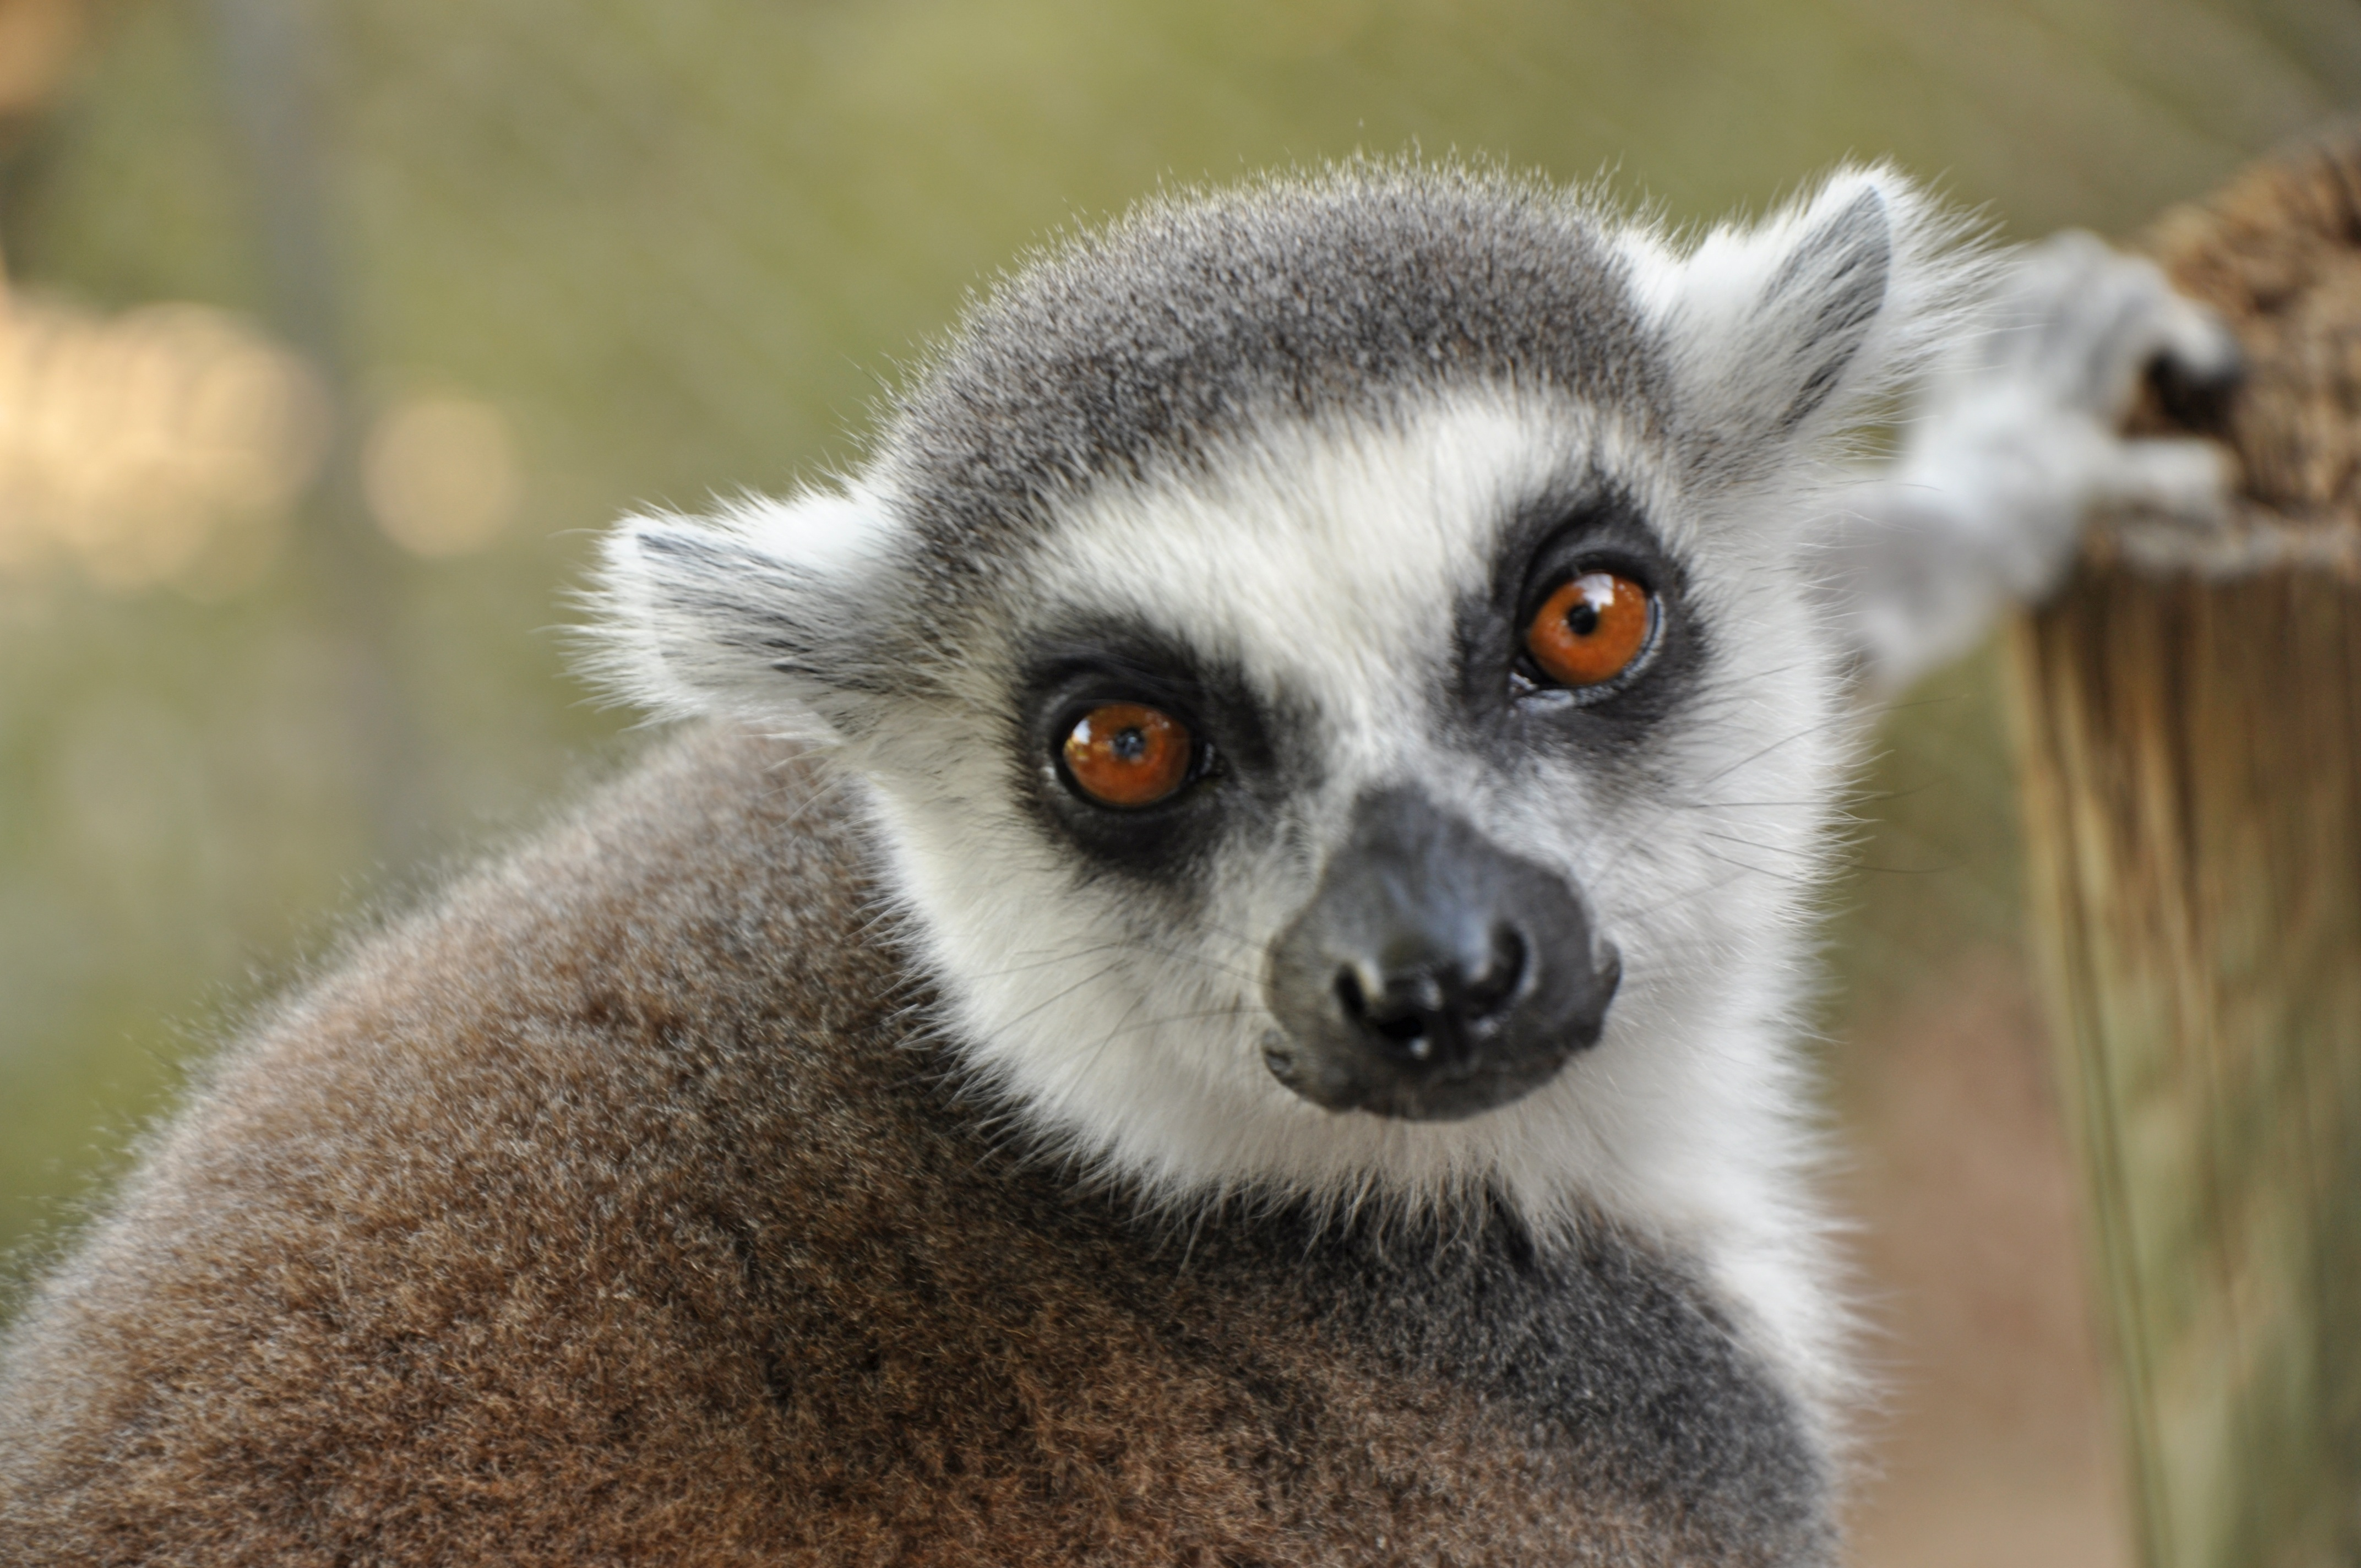 123406 download wallpaper Animals, Lemur, Muzzle, Sight, Opinion screensavers and pictures for free